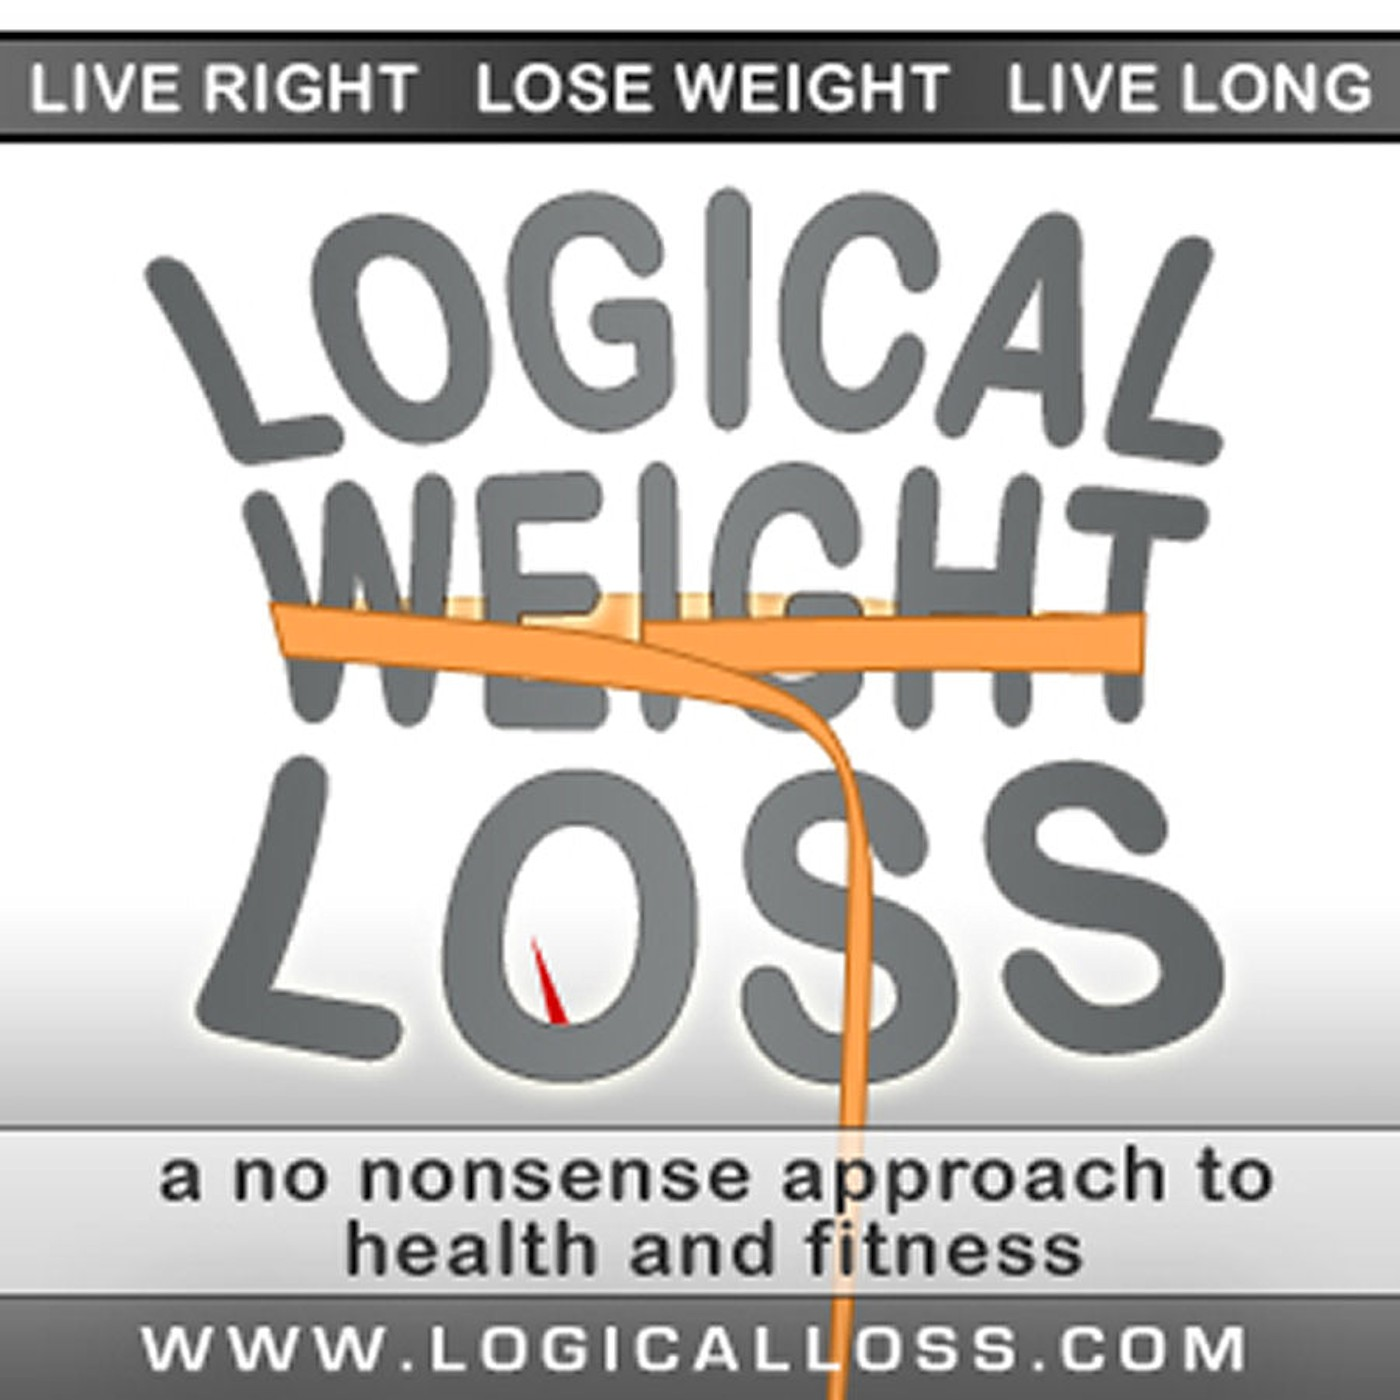 Artwork for Weight Loss Motivation Snippets